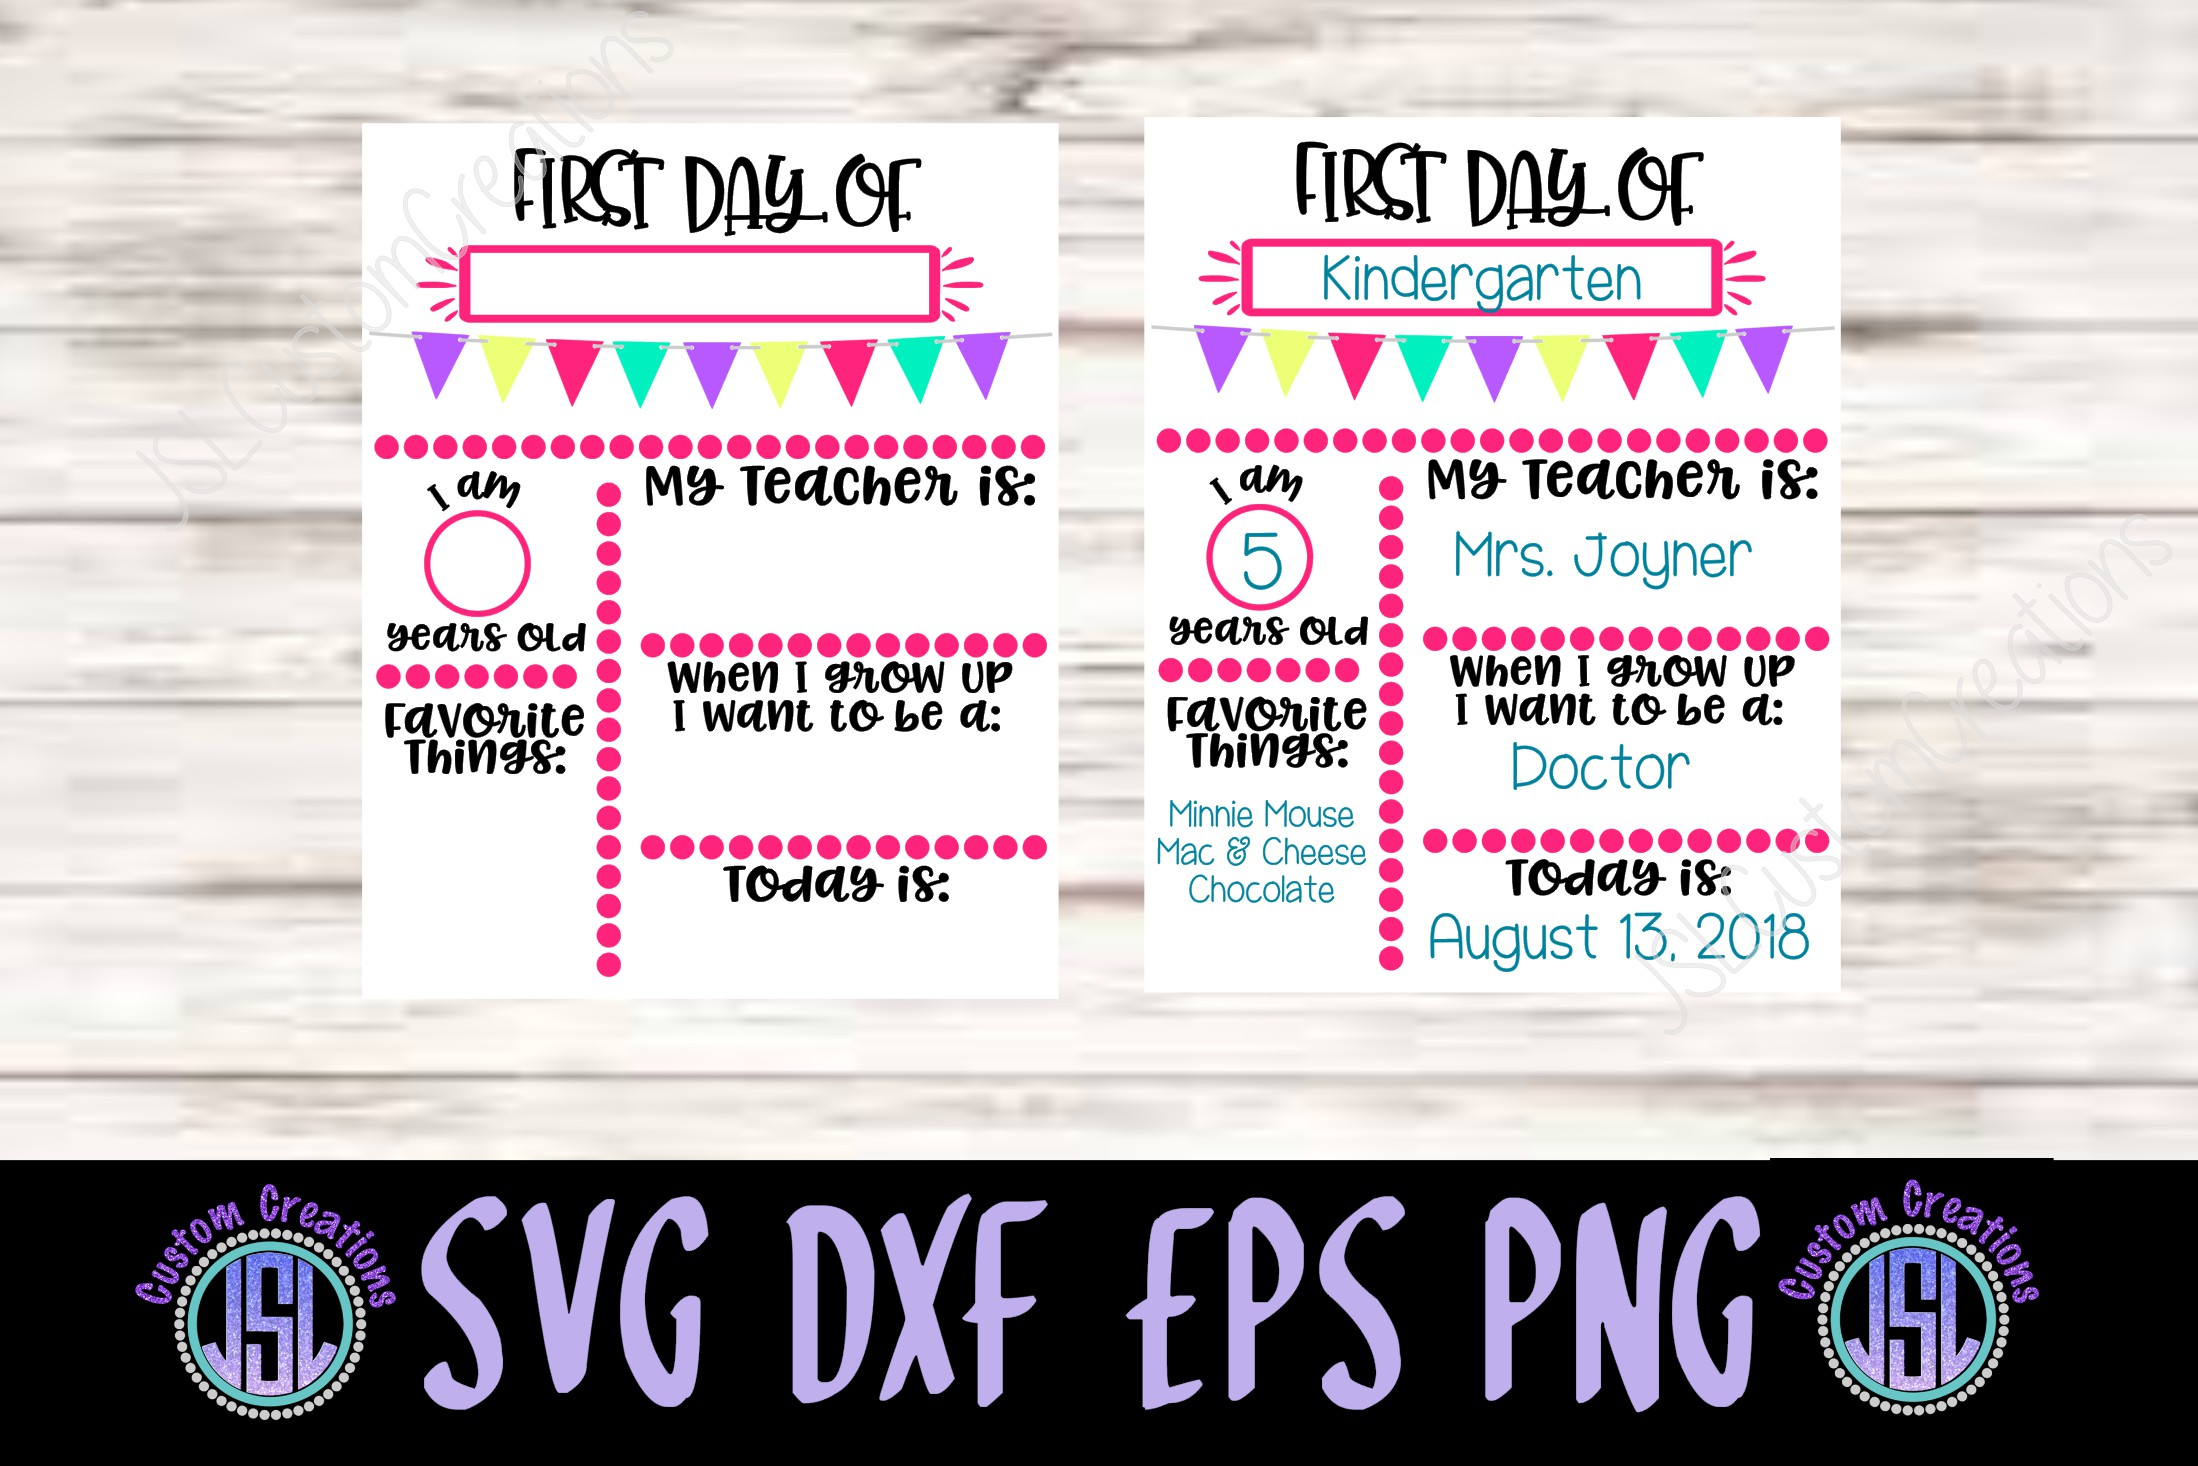 1st day of school sign template svg dxf eps png digital file example image 2